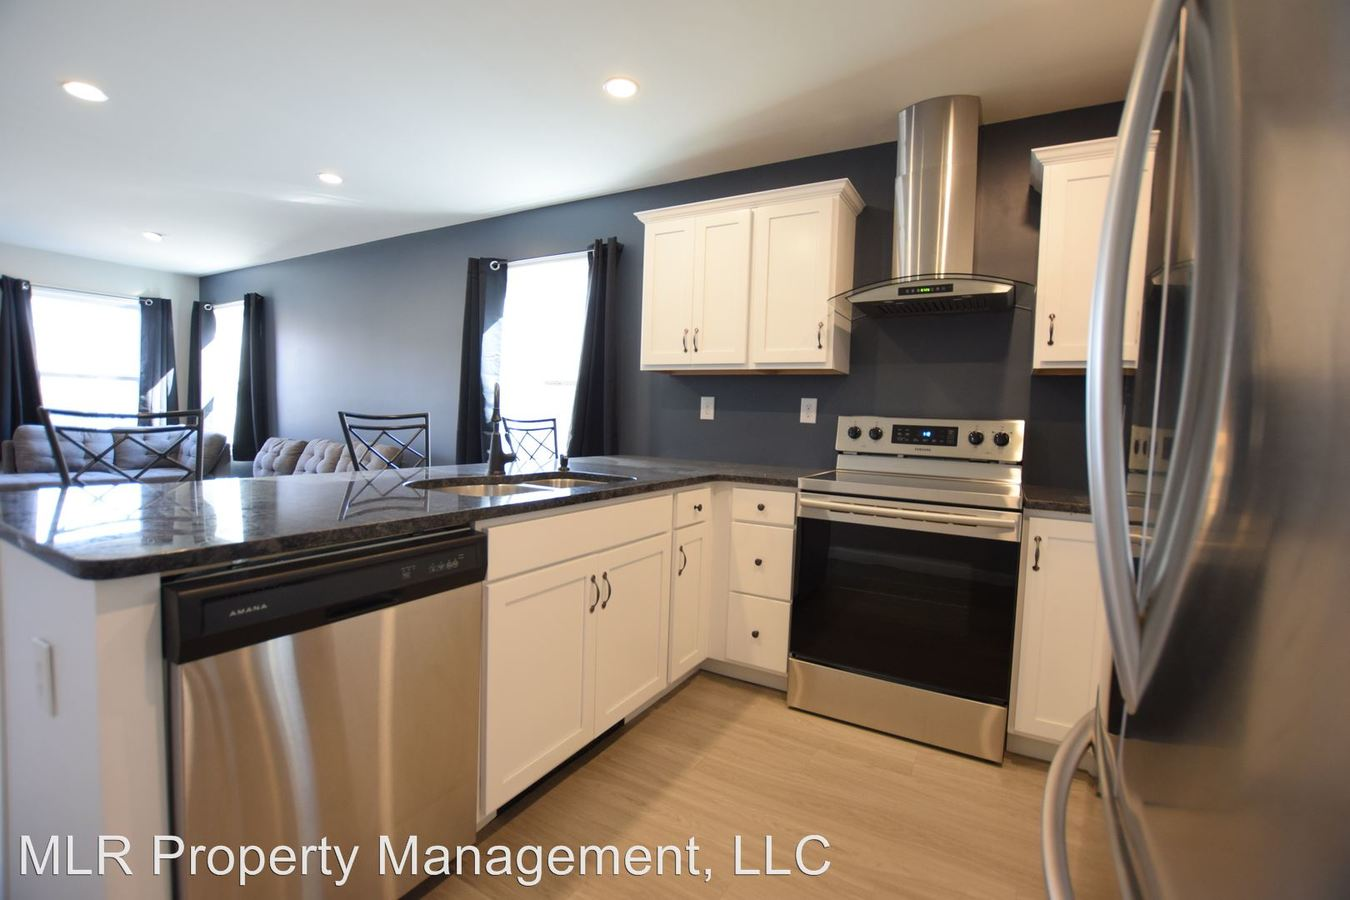 3 Bedrooms 2 Bathrooms Apartment for rent at 125-129 Elmira Rd. in Ithaca, NY